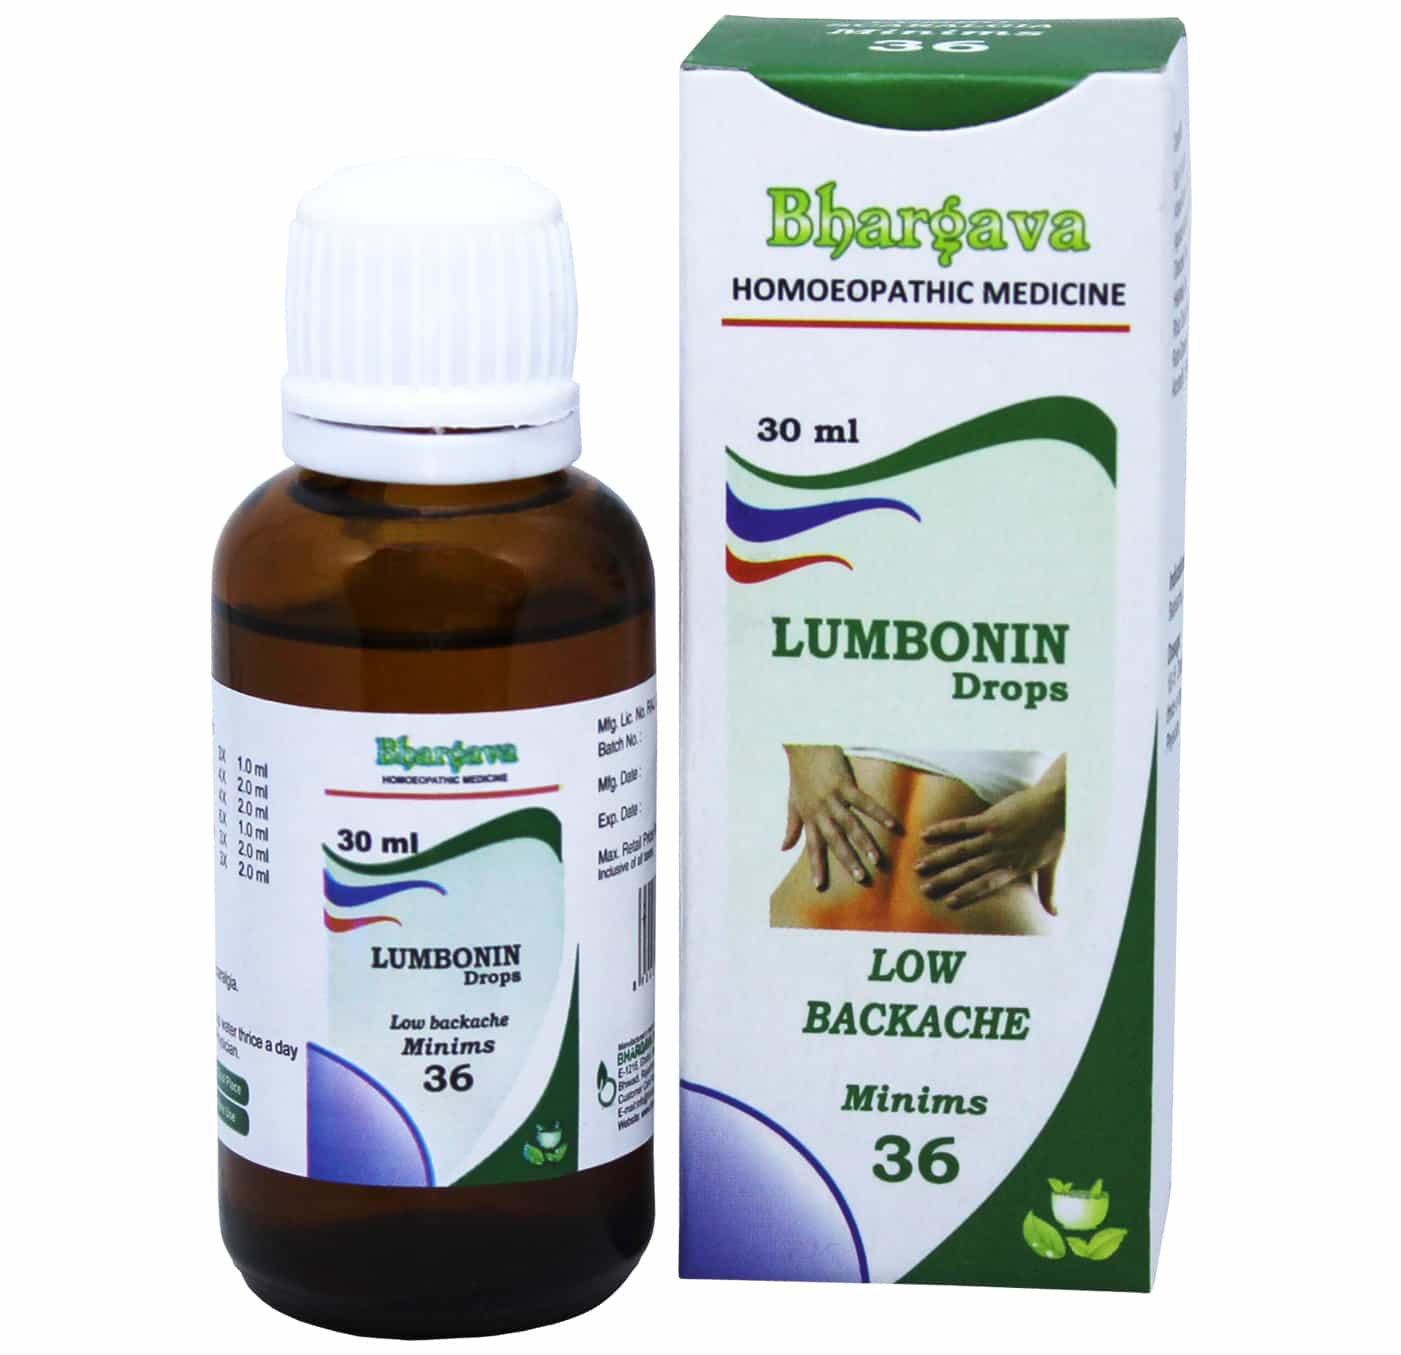 Lumbonin Minims Relief from Lower Backpain style=